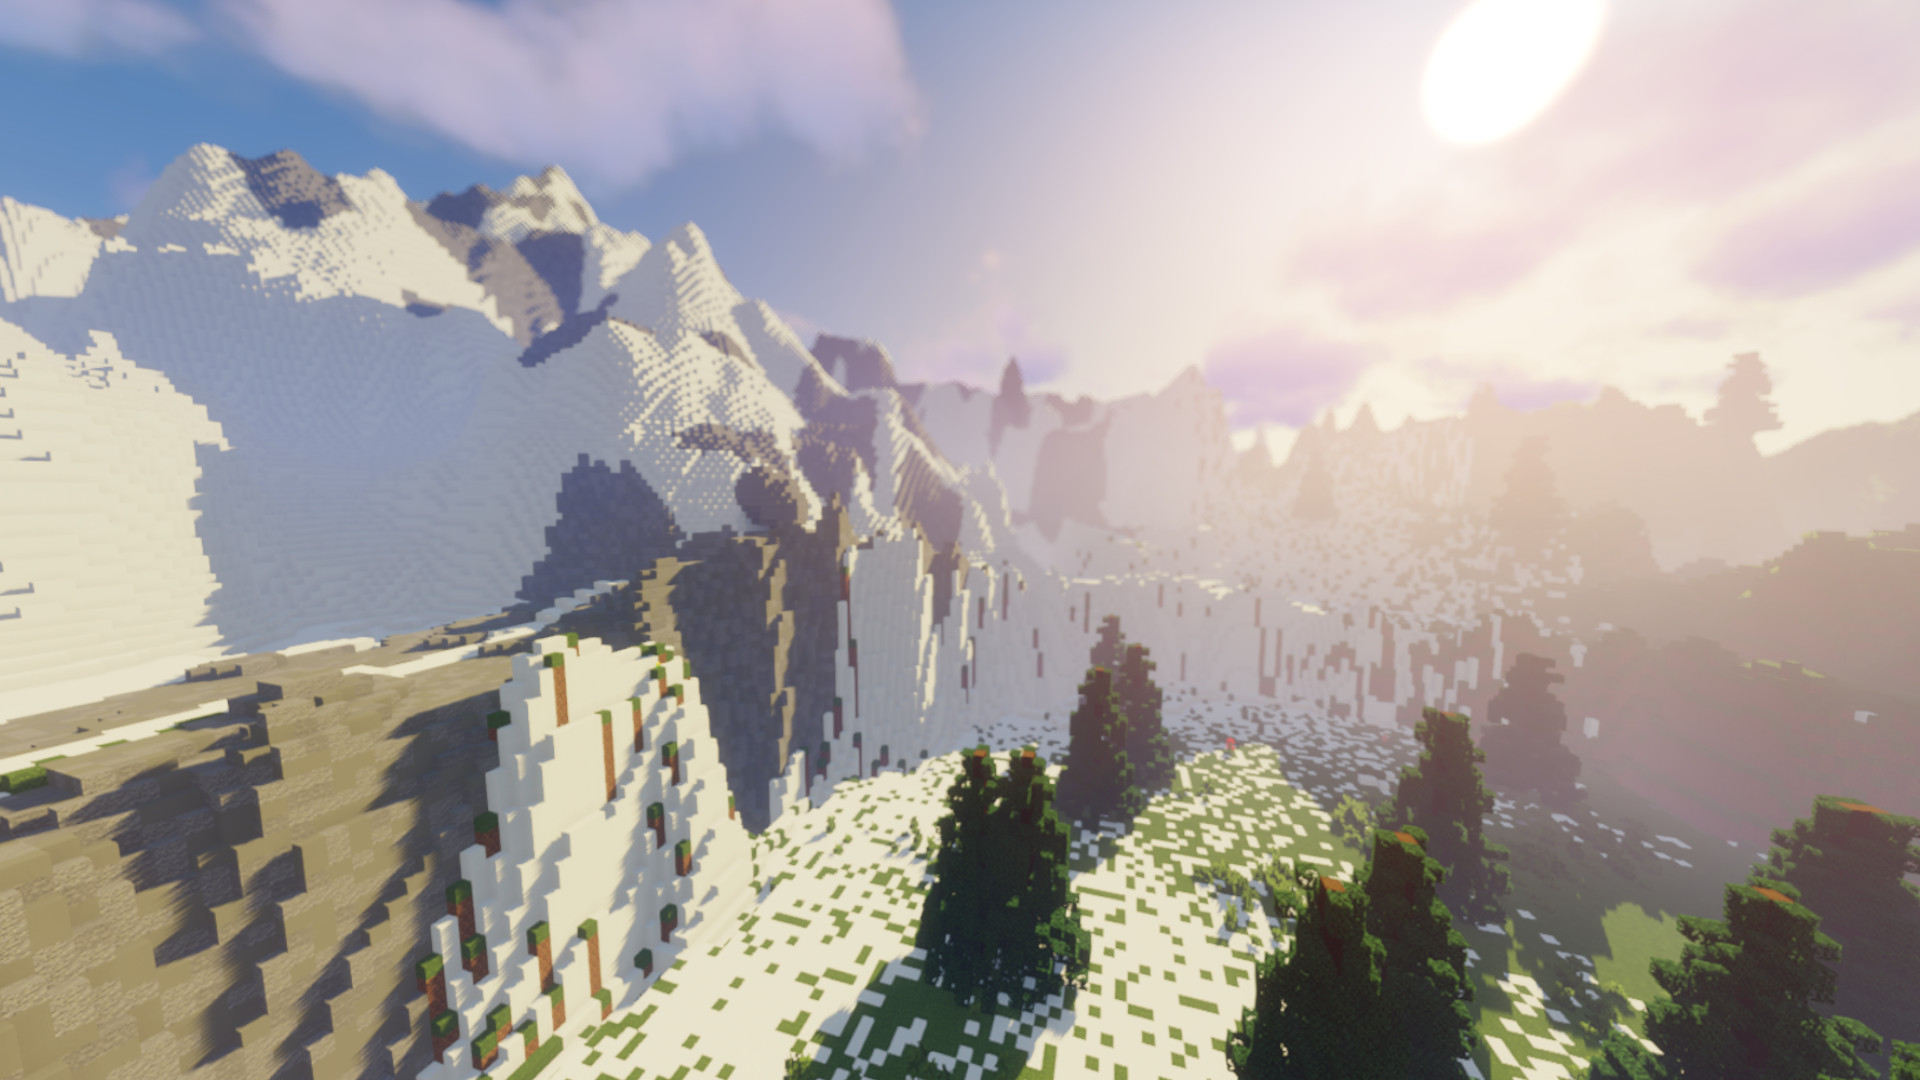 A Minecraft player is building the entire Zelda: Breath of the Wild map